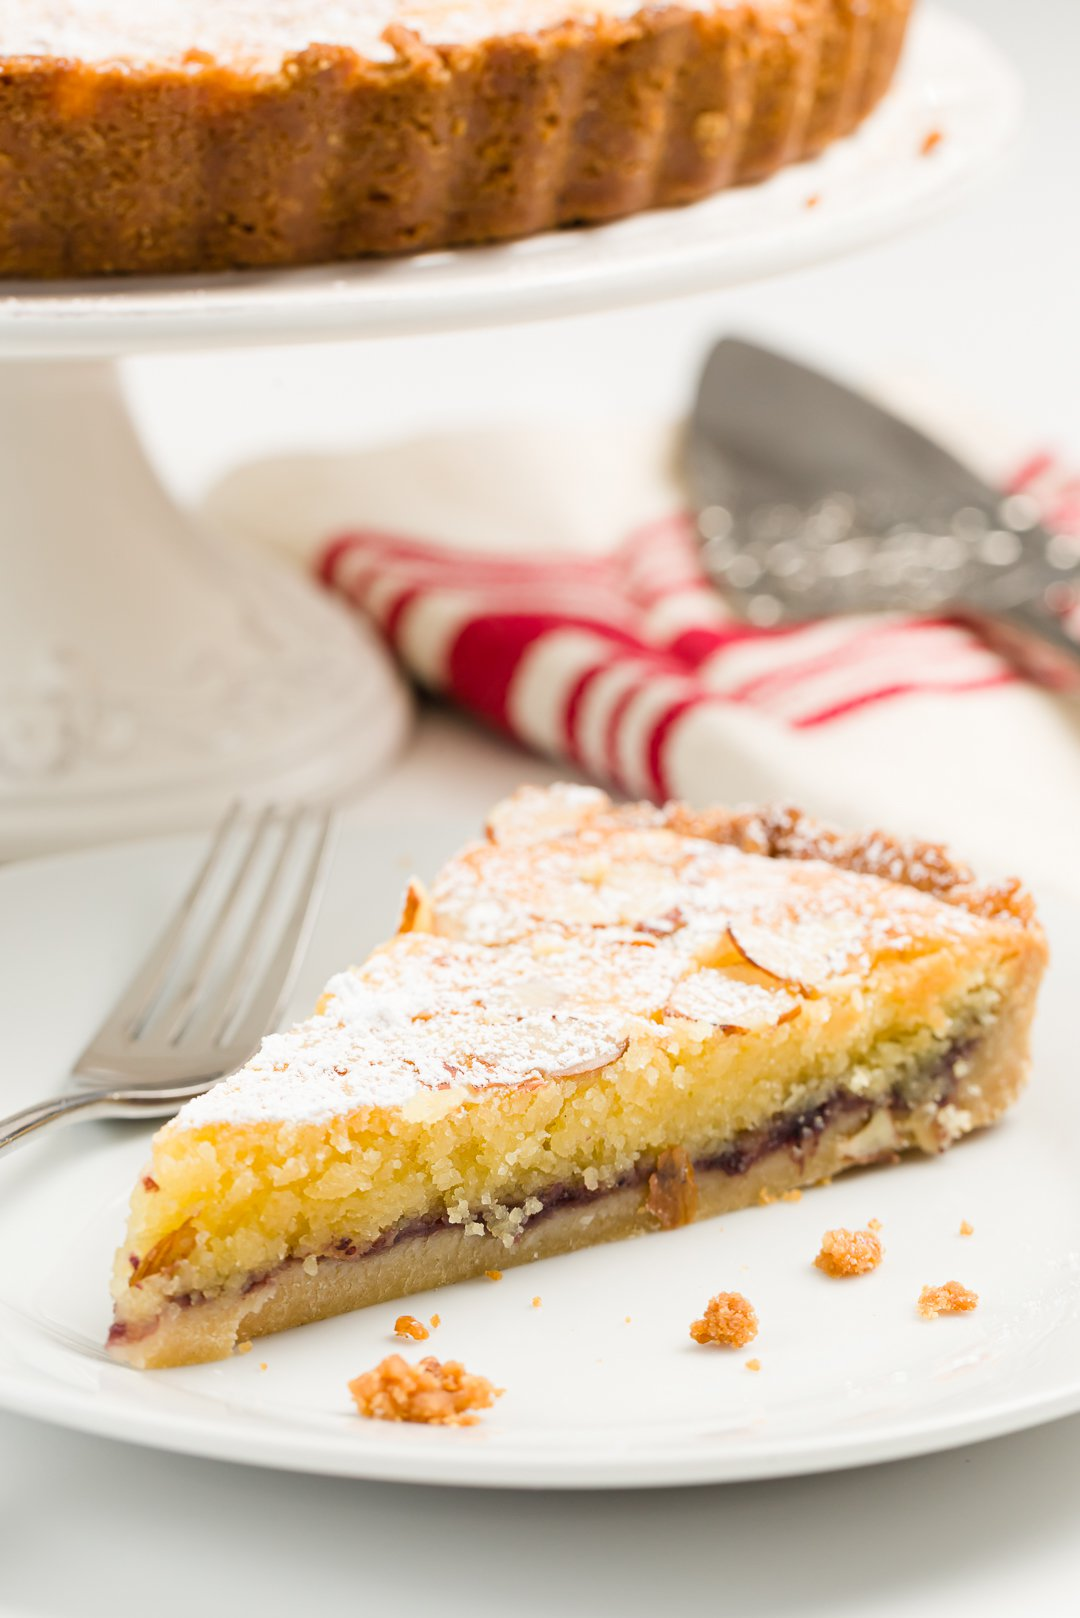 Slice of bakewell tart on a plate with a fork and the whole tart on a stand in the background